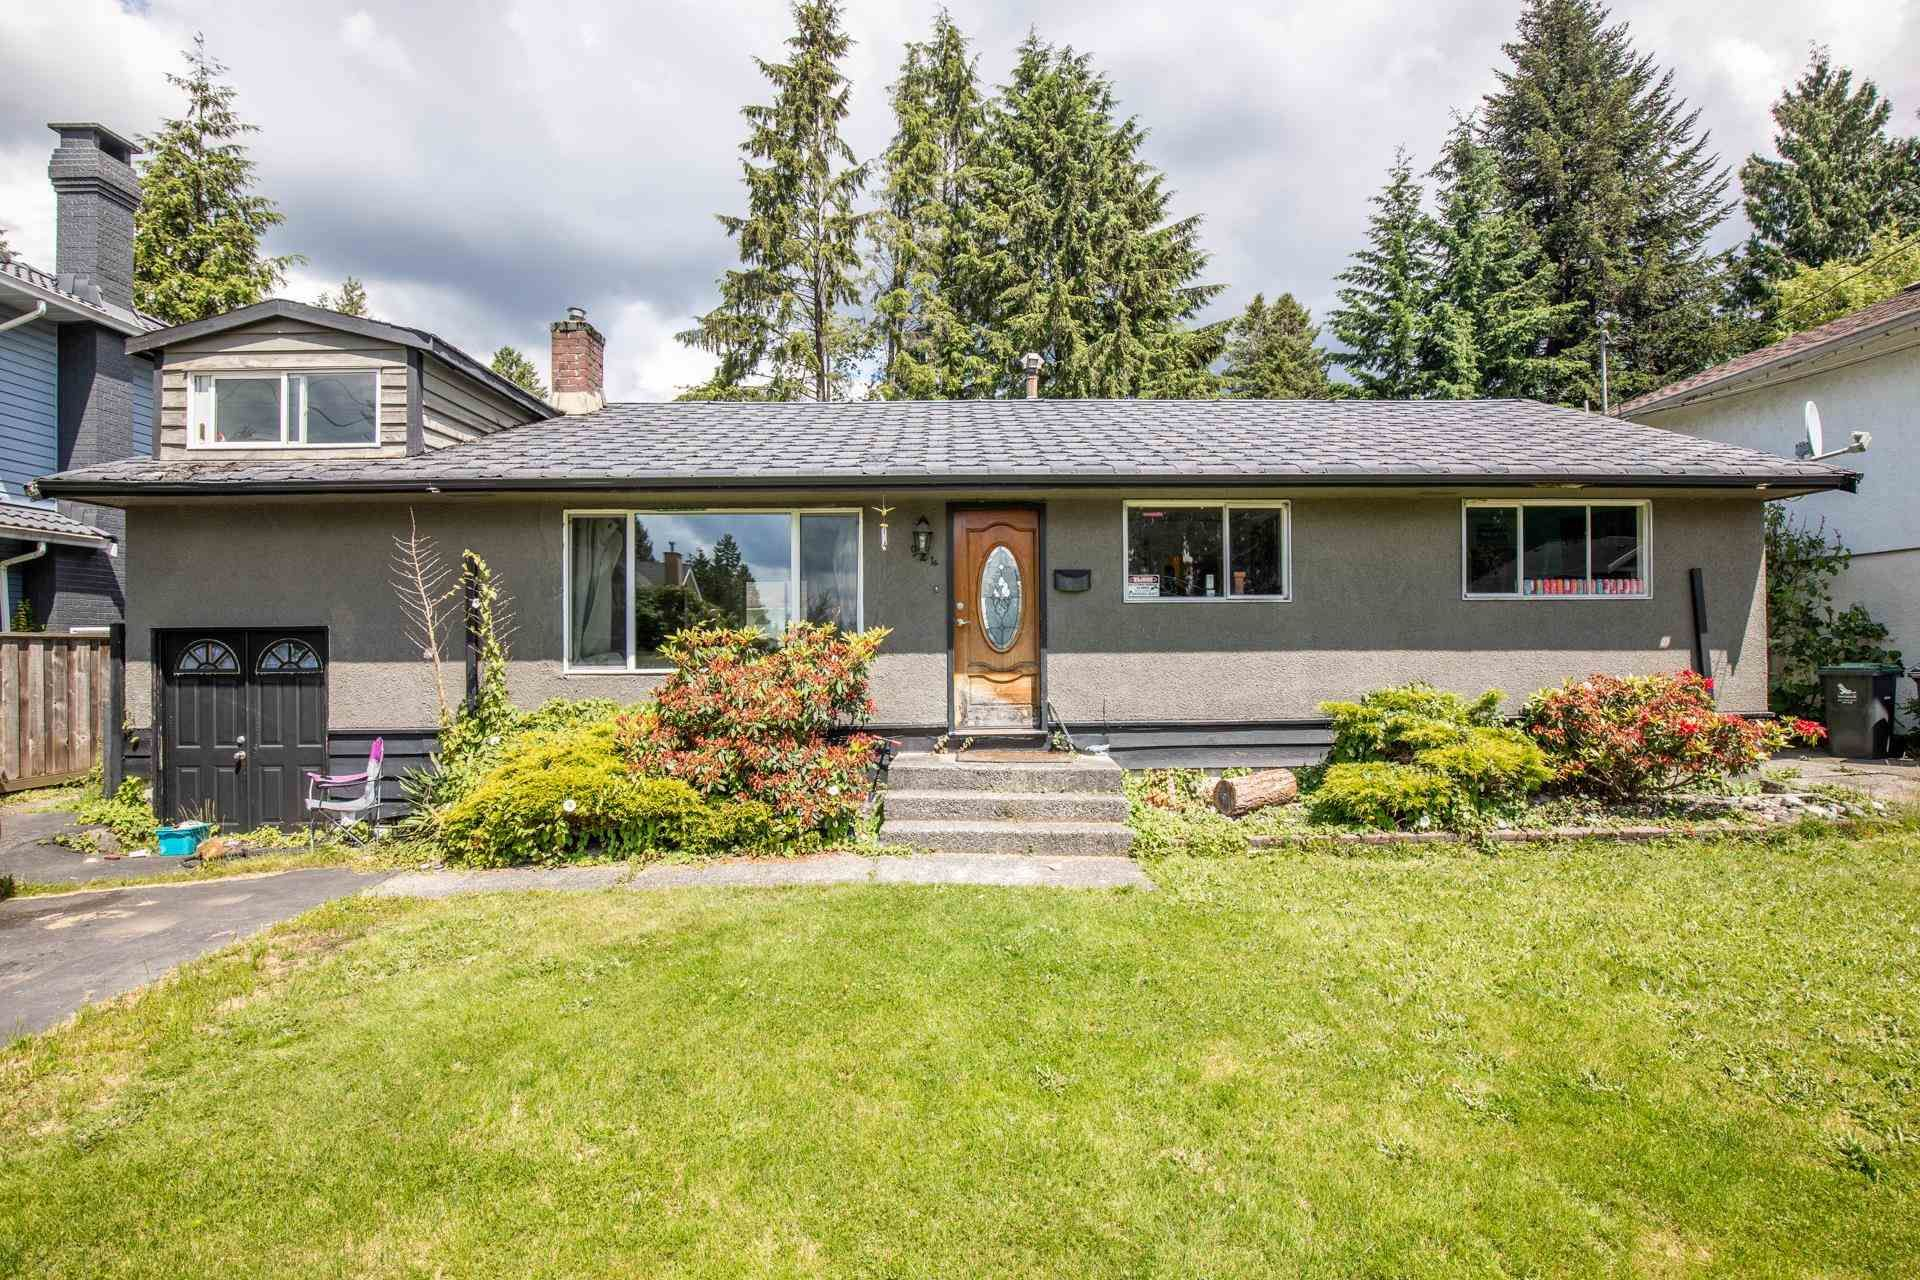 Main Photo: 924 VINEY Road in North Vancouver: Lynn Valley House for sale : MLS®# R2594861